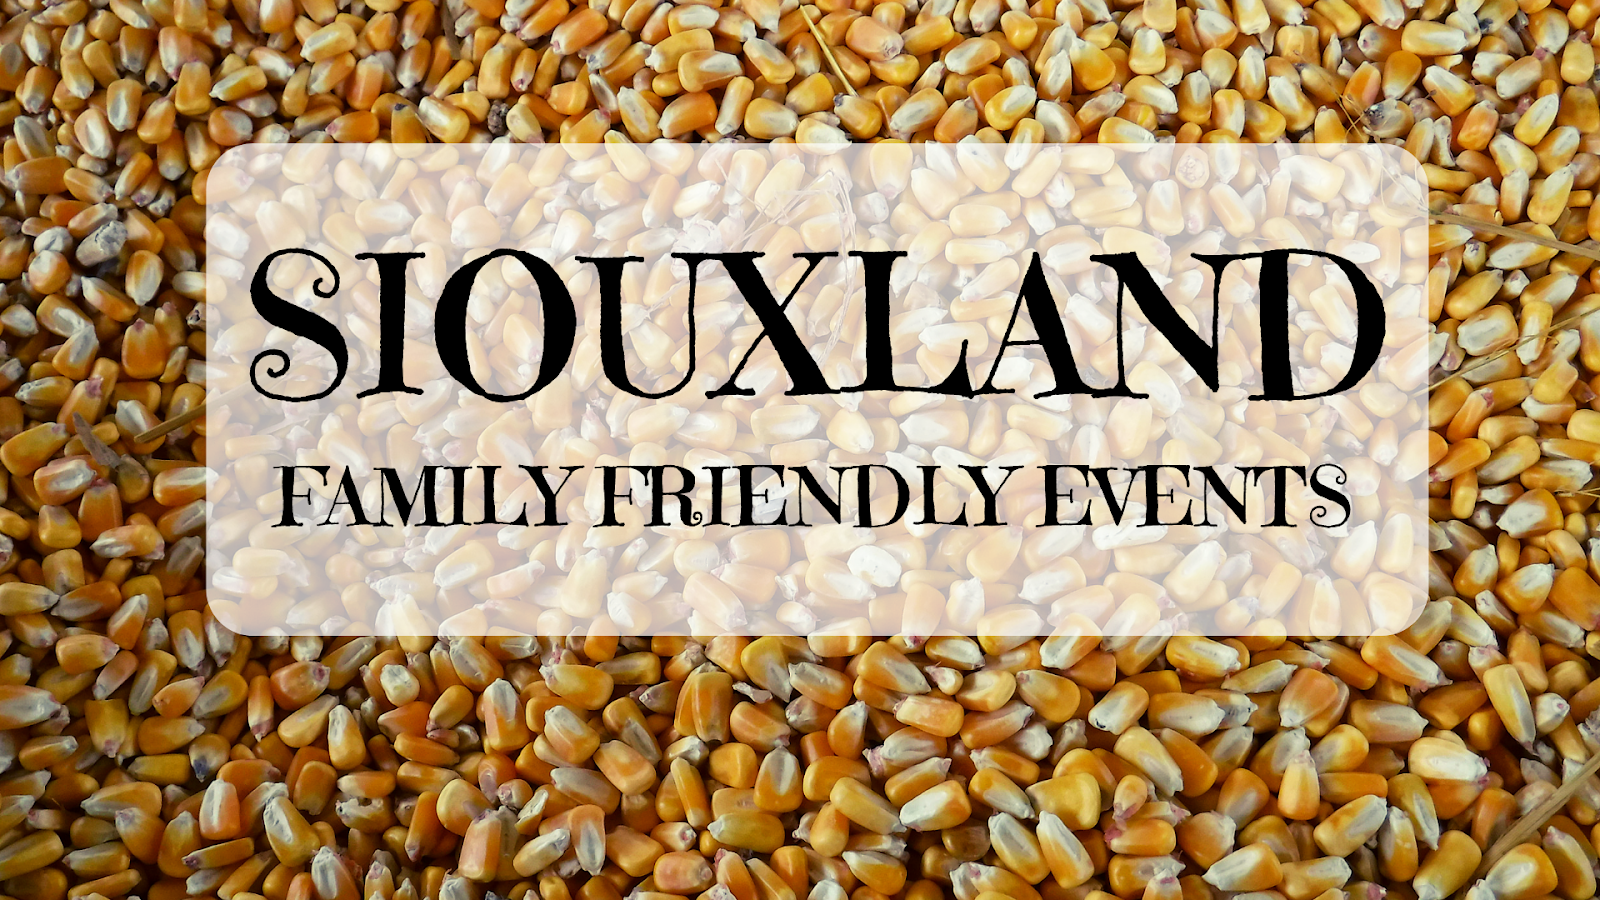 Join the Siouxland Family Friendly Events FB group!